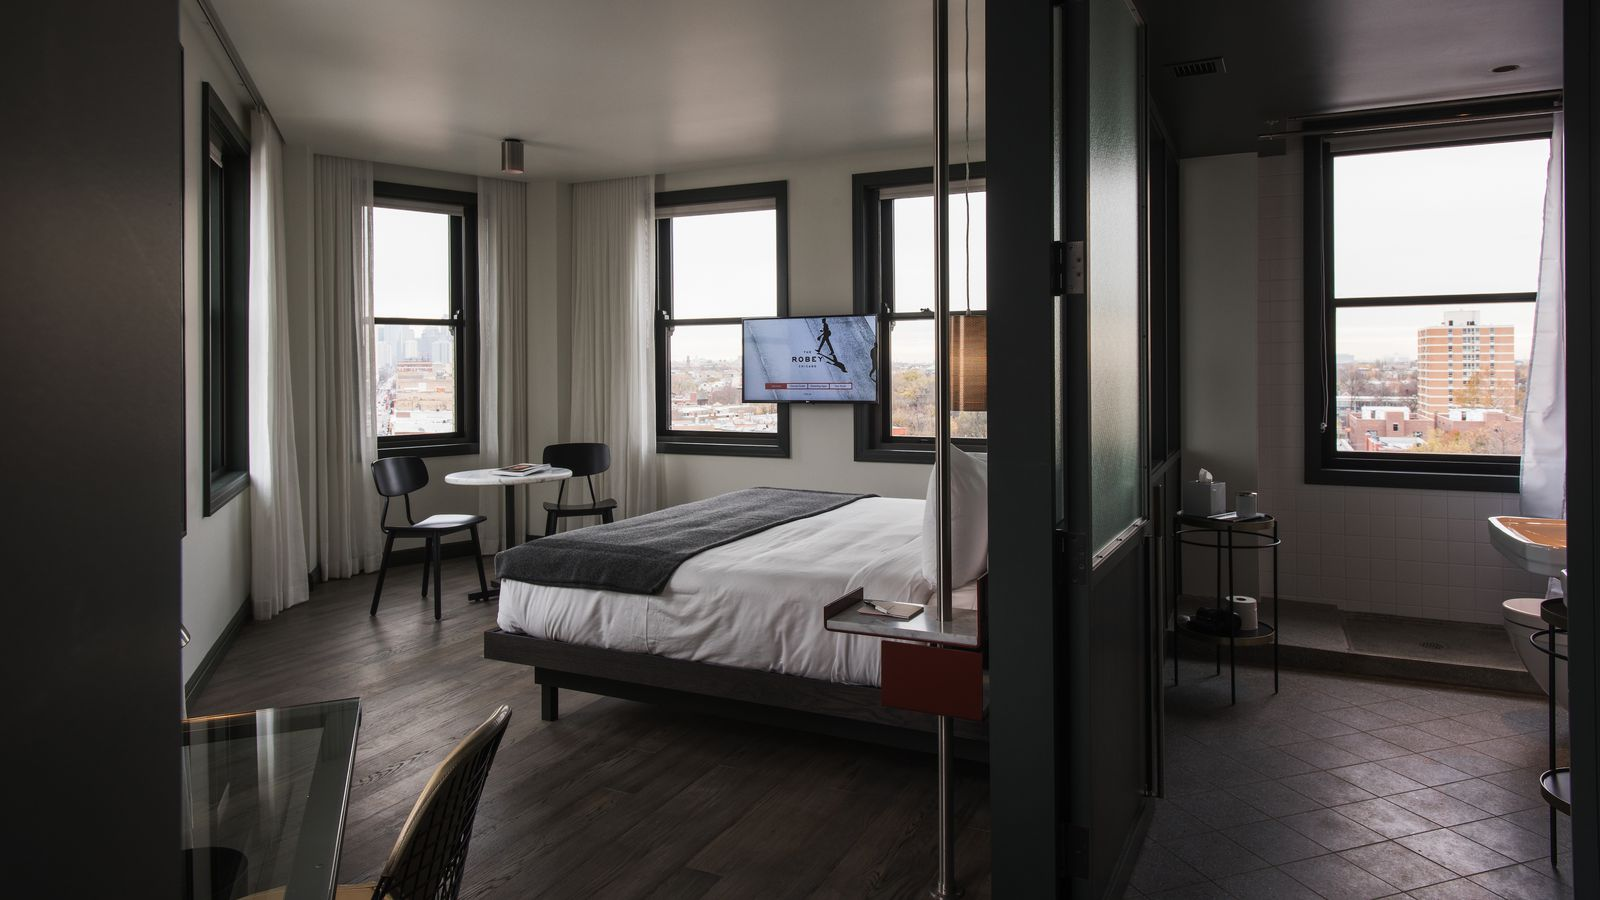 Take A Tour Through Wicker Park's New Robey Hotel